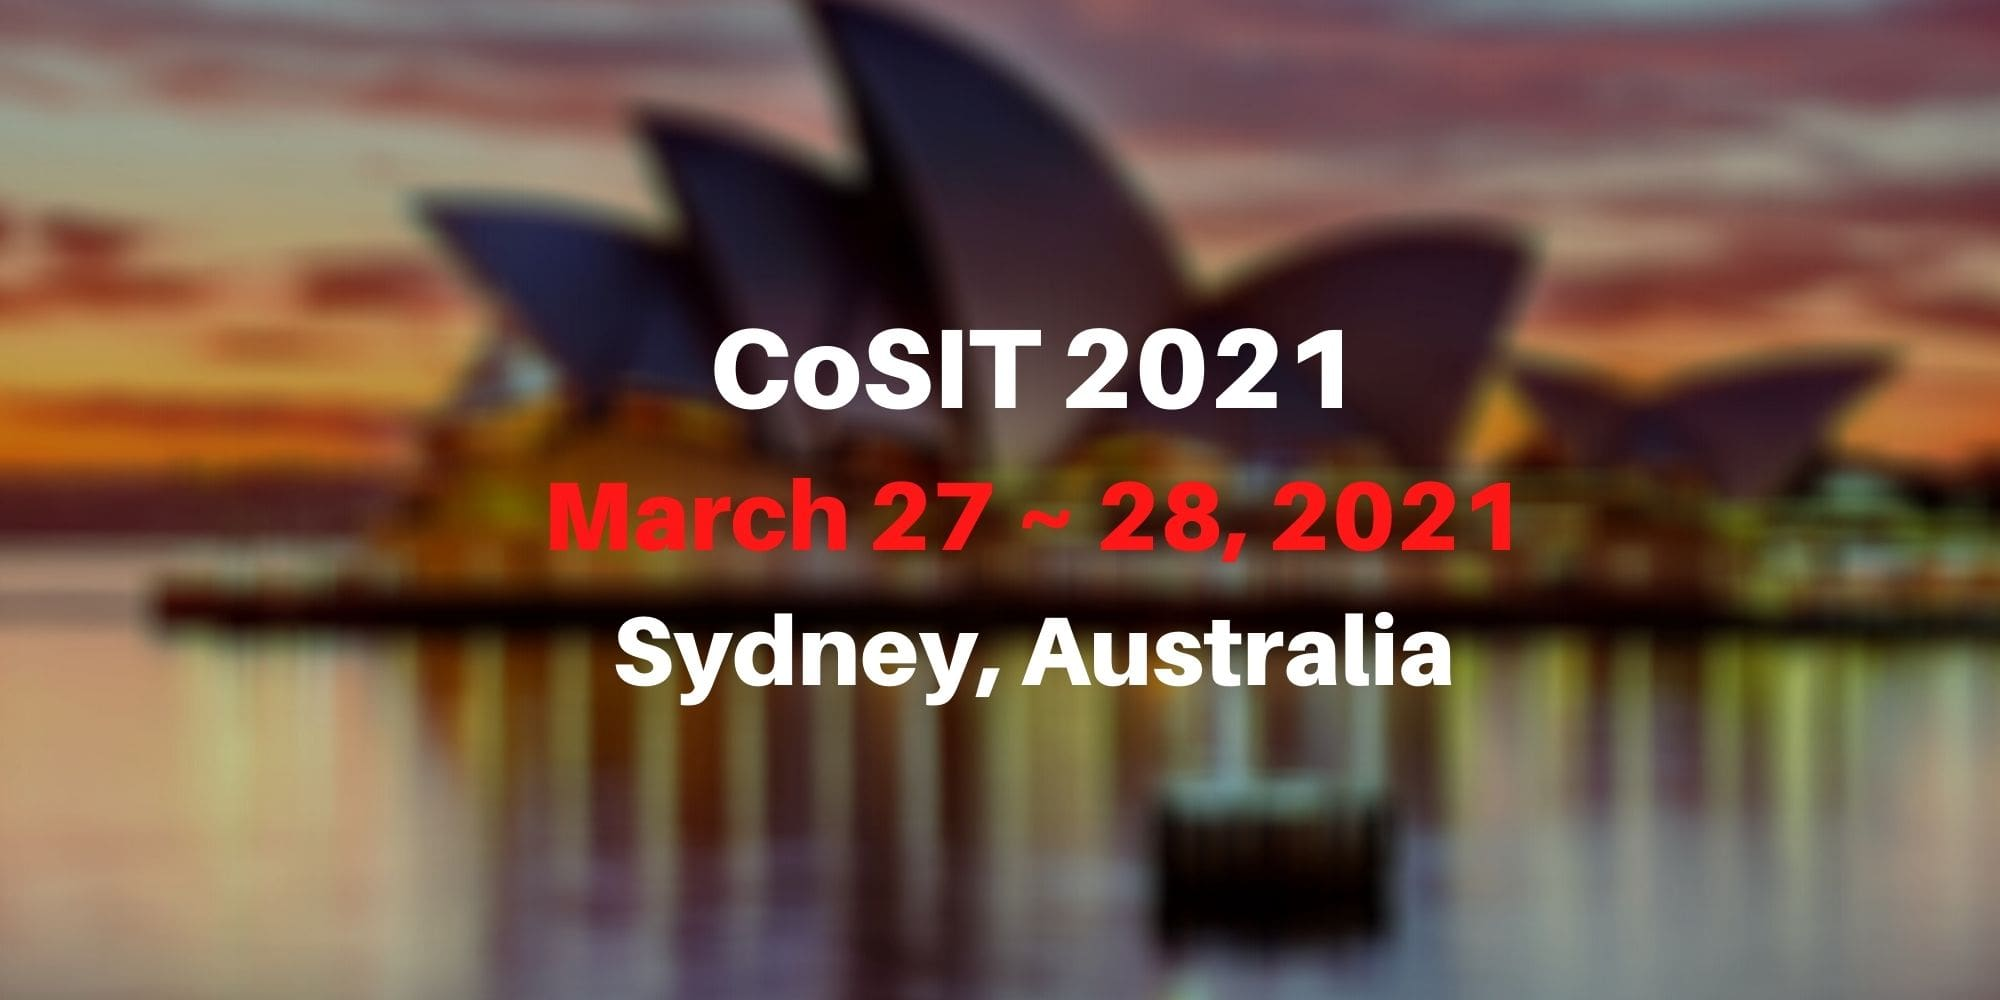 8th International Conference on Computer Science and Information Technology (CoSIT 2021)